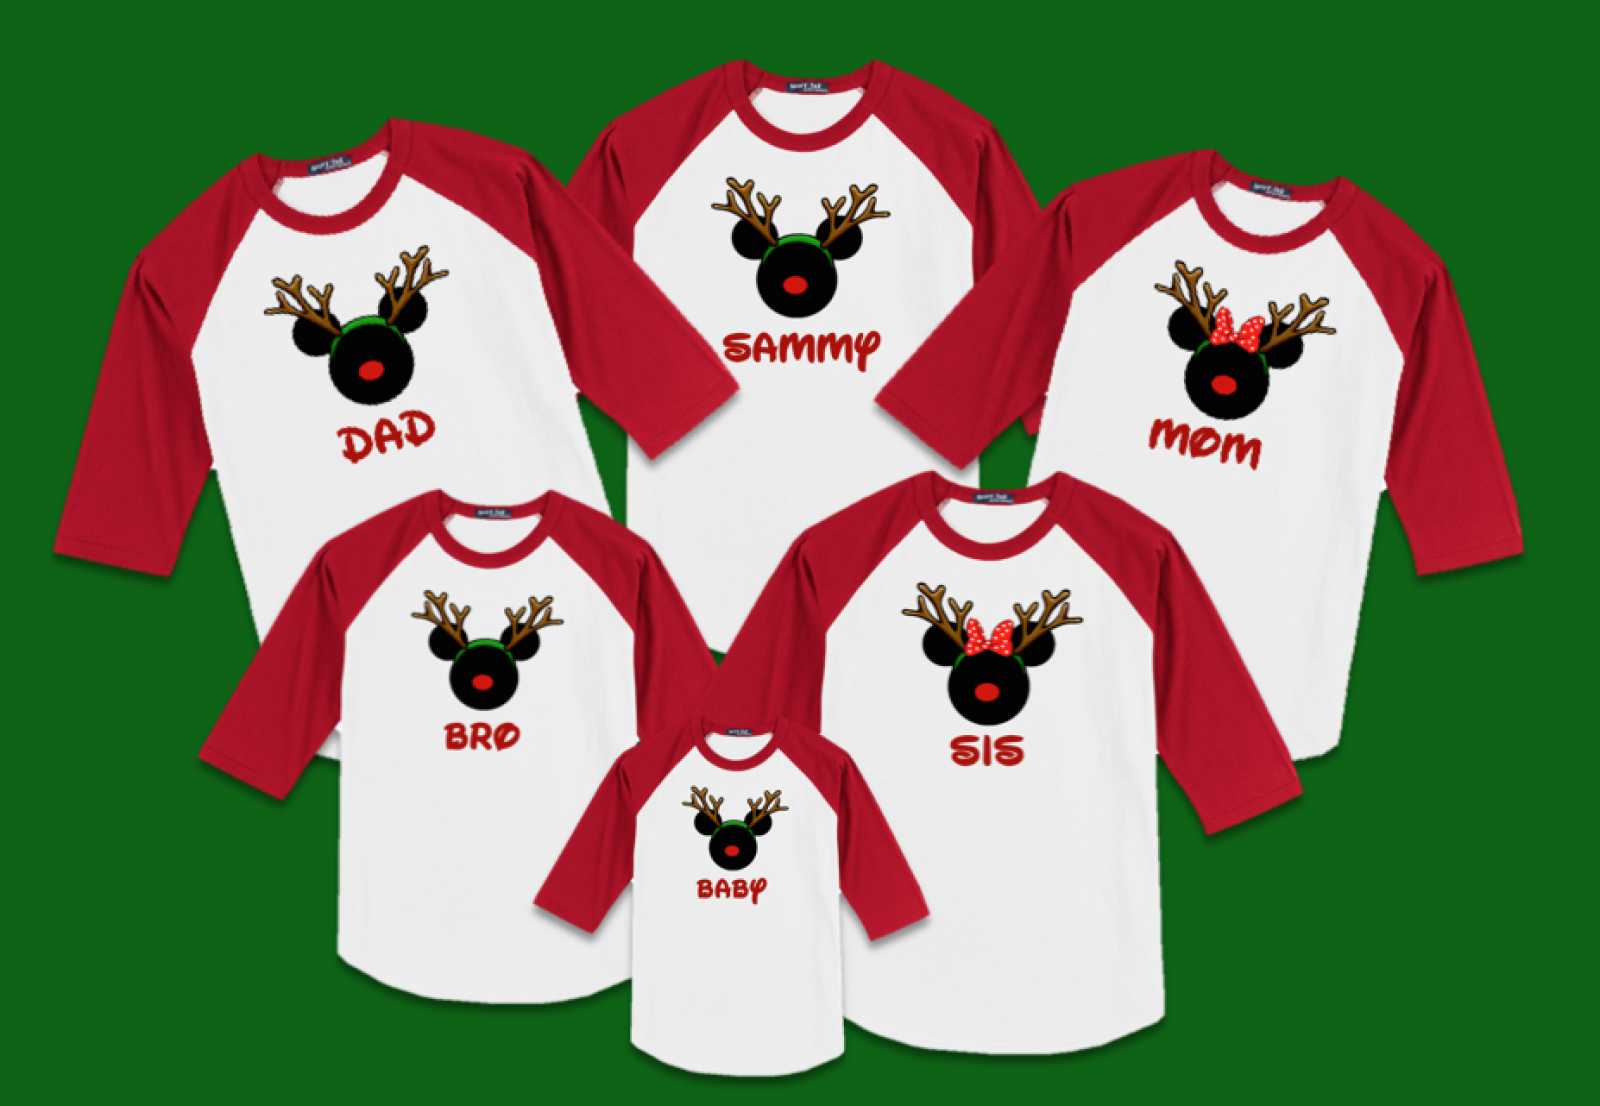 8ea78ac0db834 Disney Christmas Rudolph Reindeer Family Vacation Raglan T-Shirts